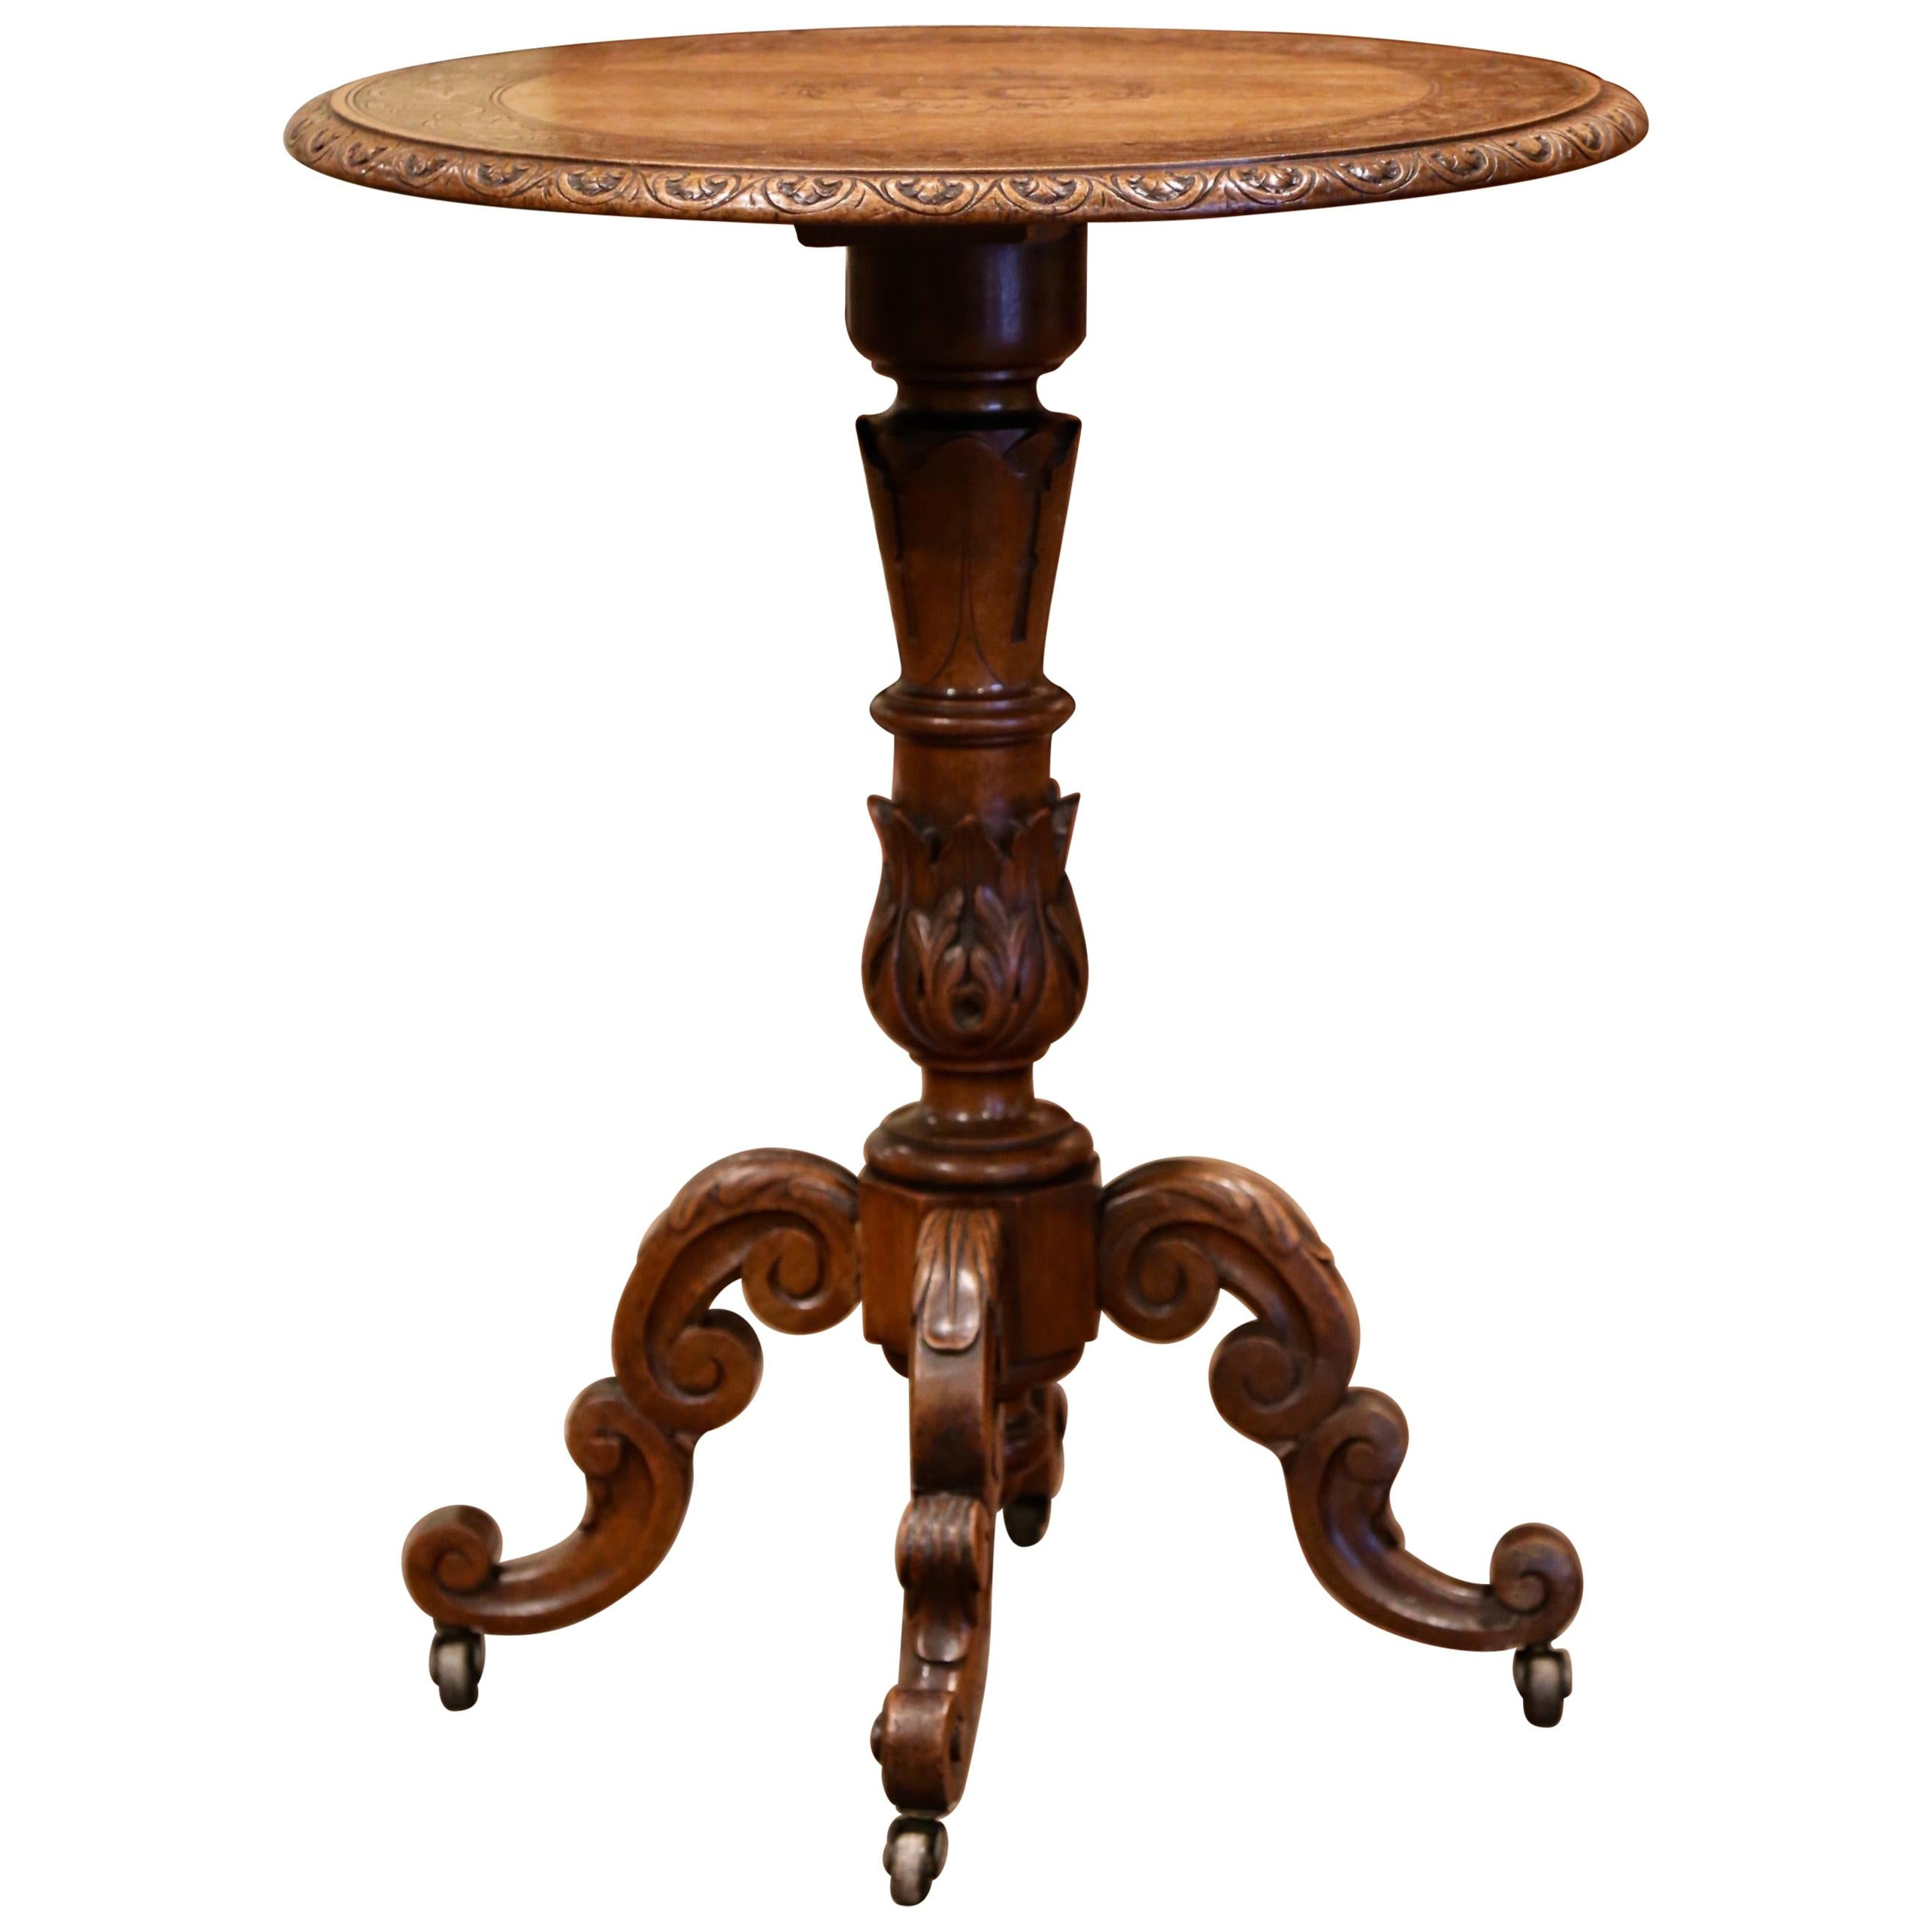 19th Century French Black Forest Carved Walnut Pedestal Table with Vine Decor